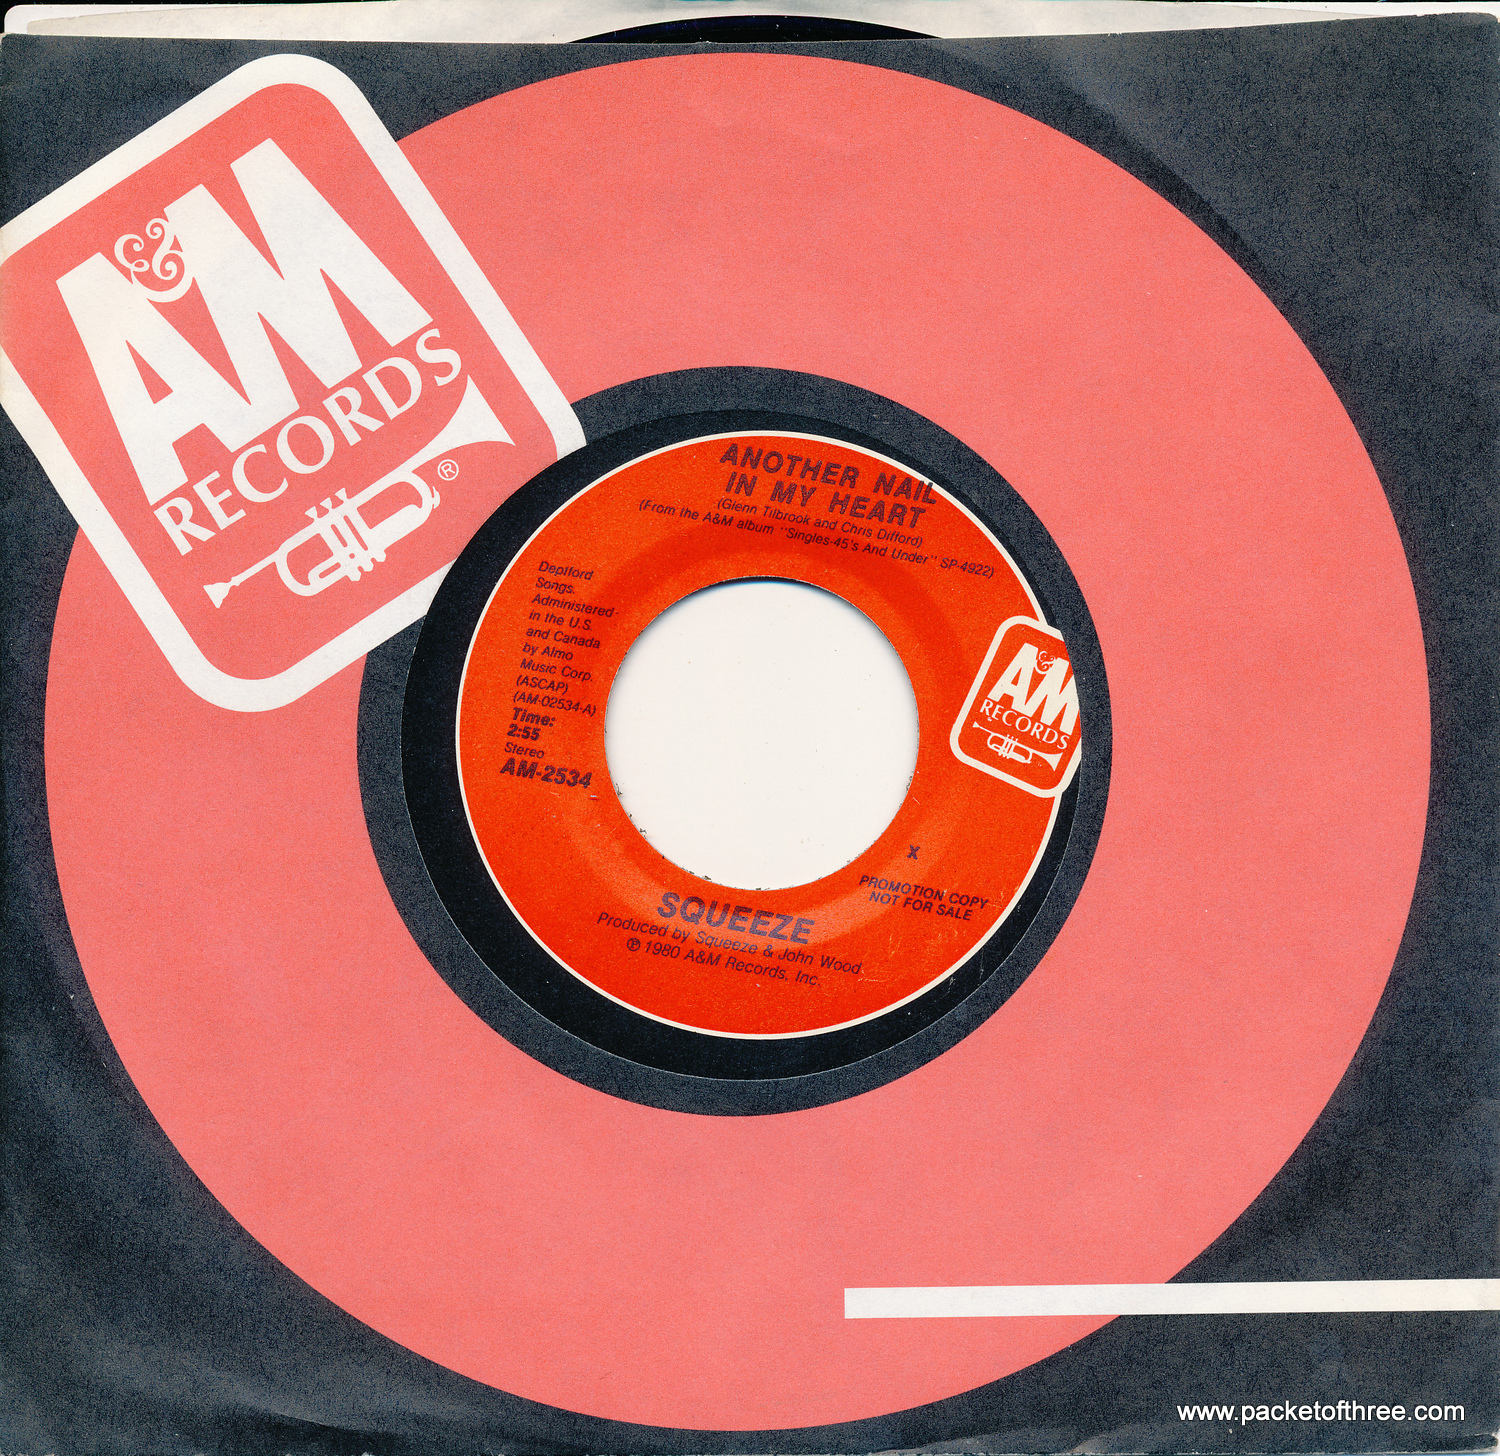 "Another Nail In My Heart - USA - 7"" - Mono/Stereo Promotional Copy"